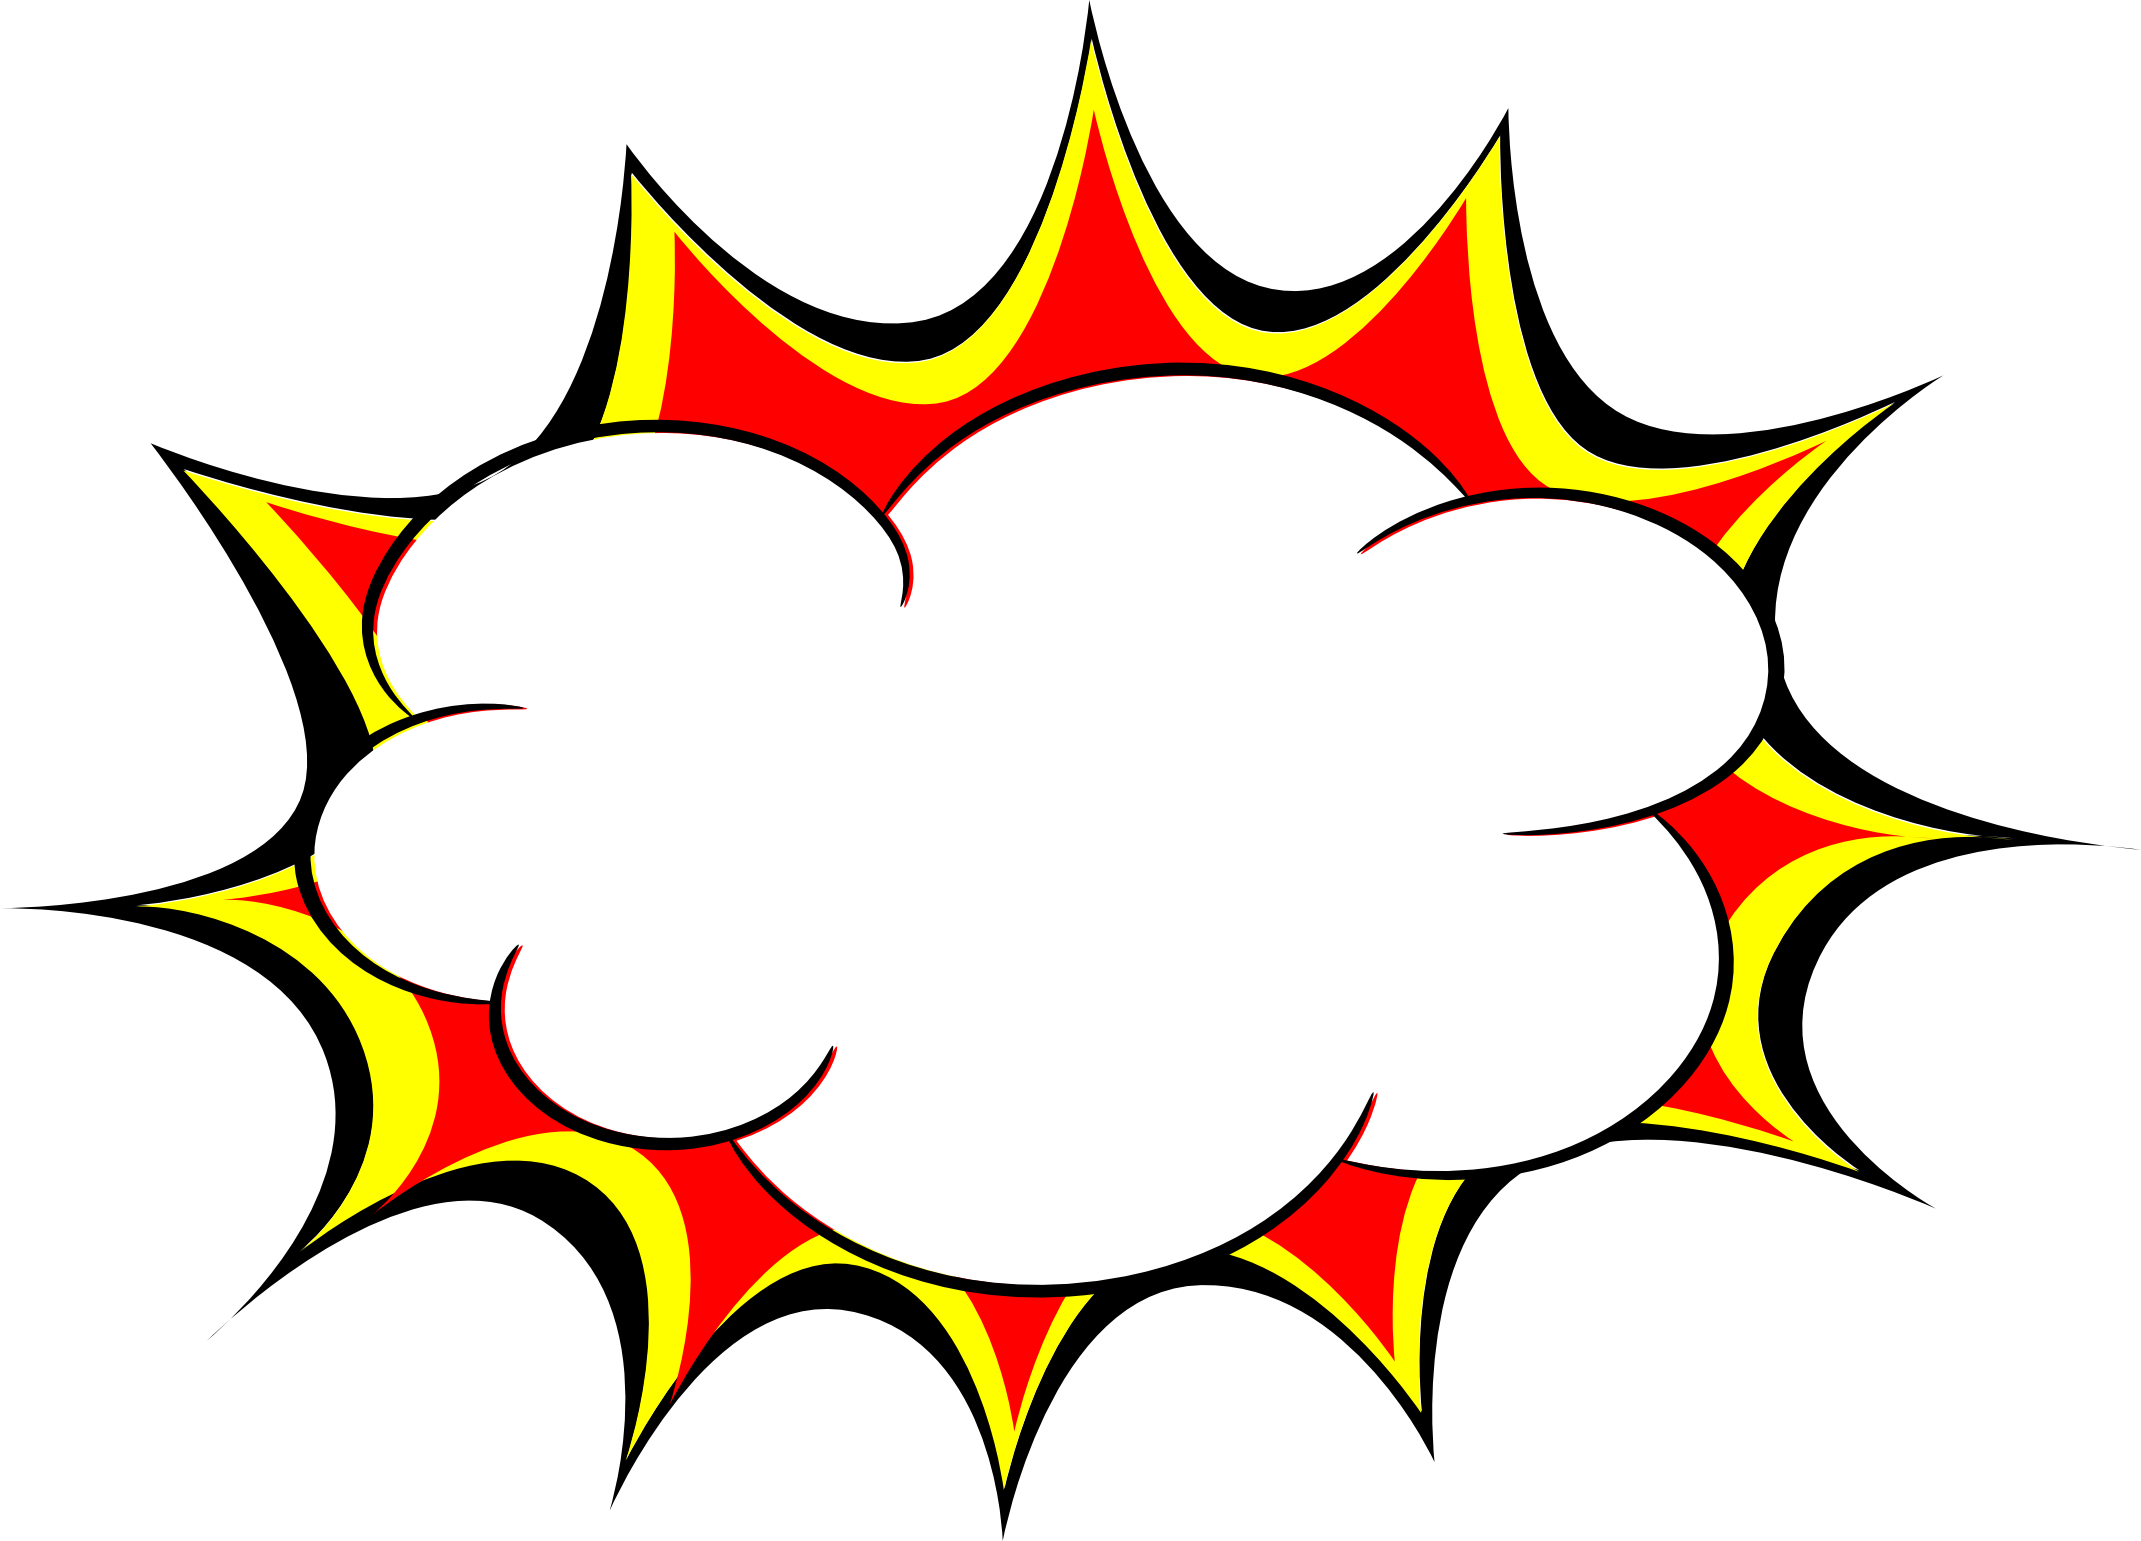 Explosion cartoon png. Comic bubble transparent